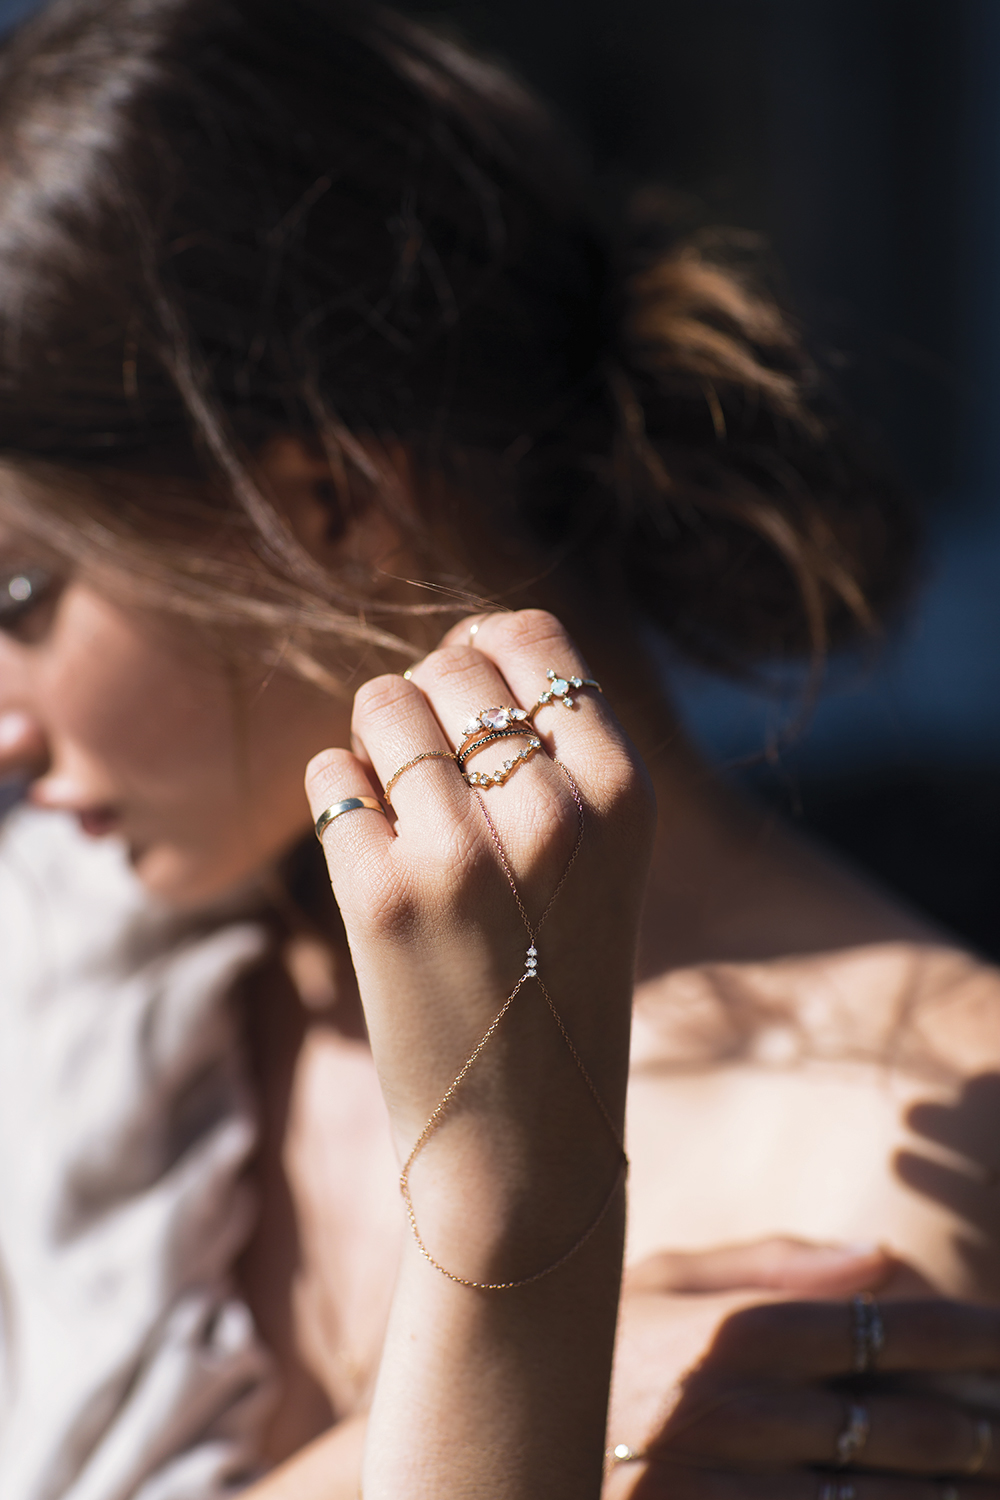 Catbird stacking jewelry